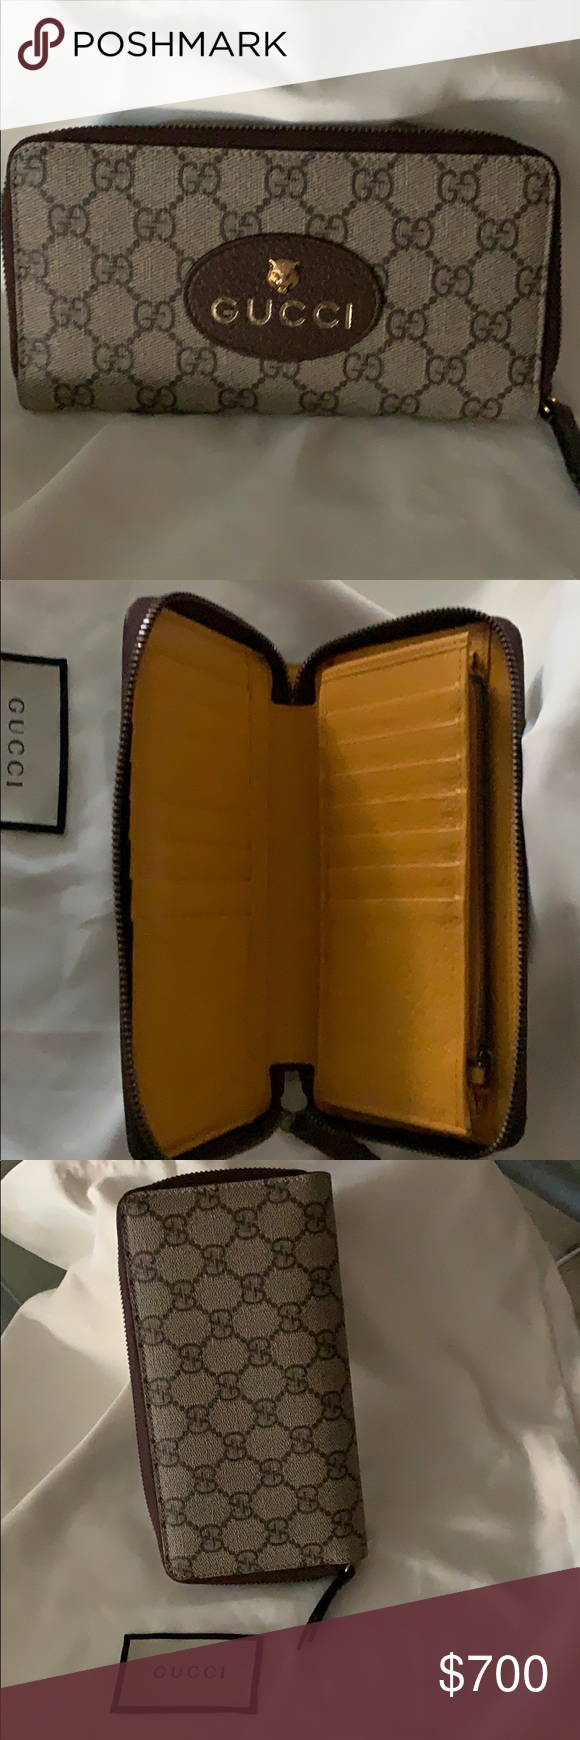 2c2c6e6ebb7 Gucci wallet with Gold fox Gucci Wallet - Clutch and credit card holder  Gucci Bags Wallets